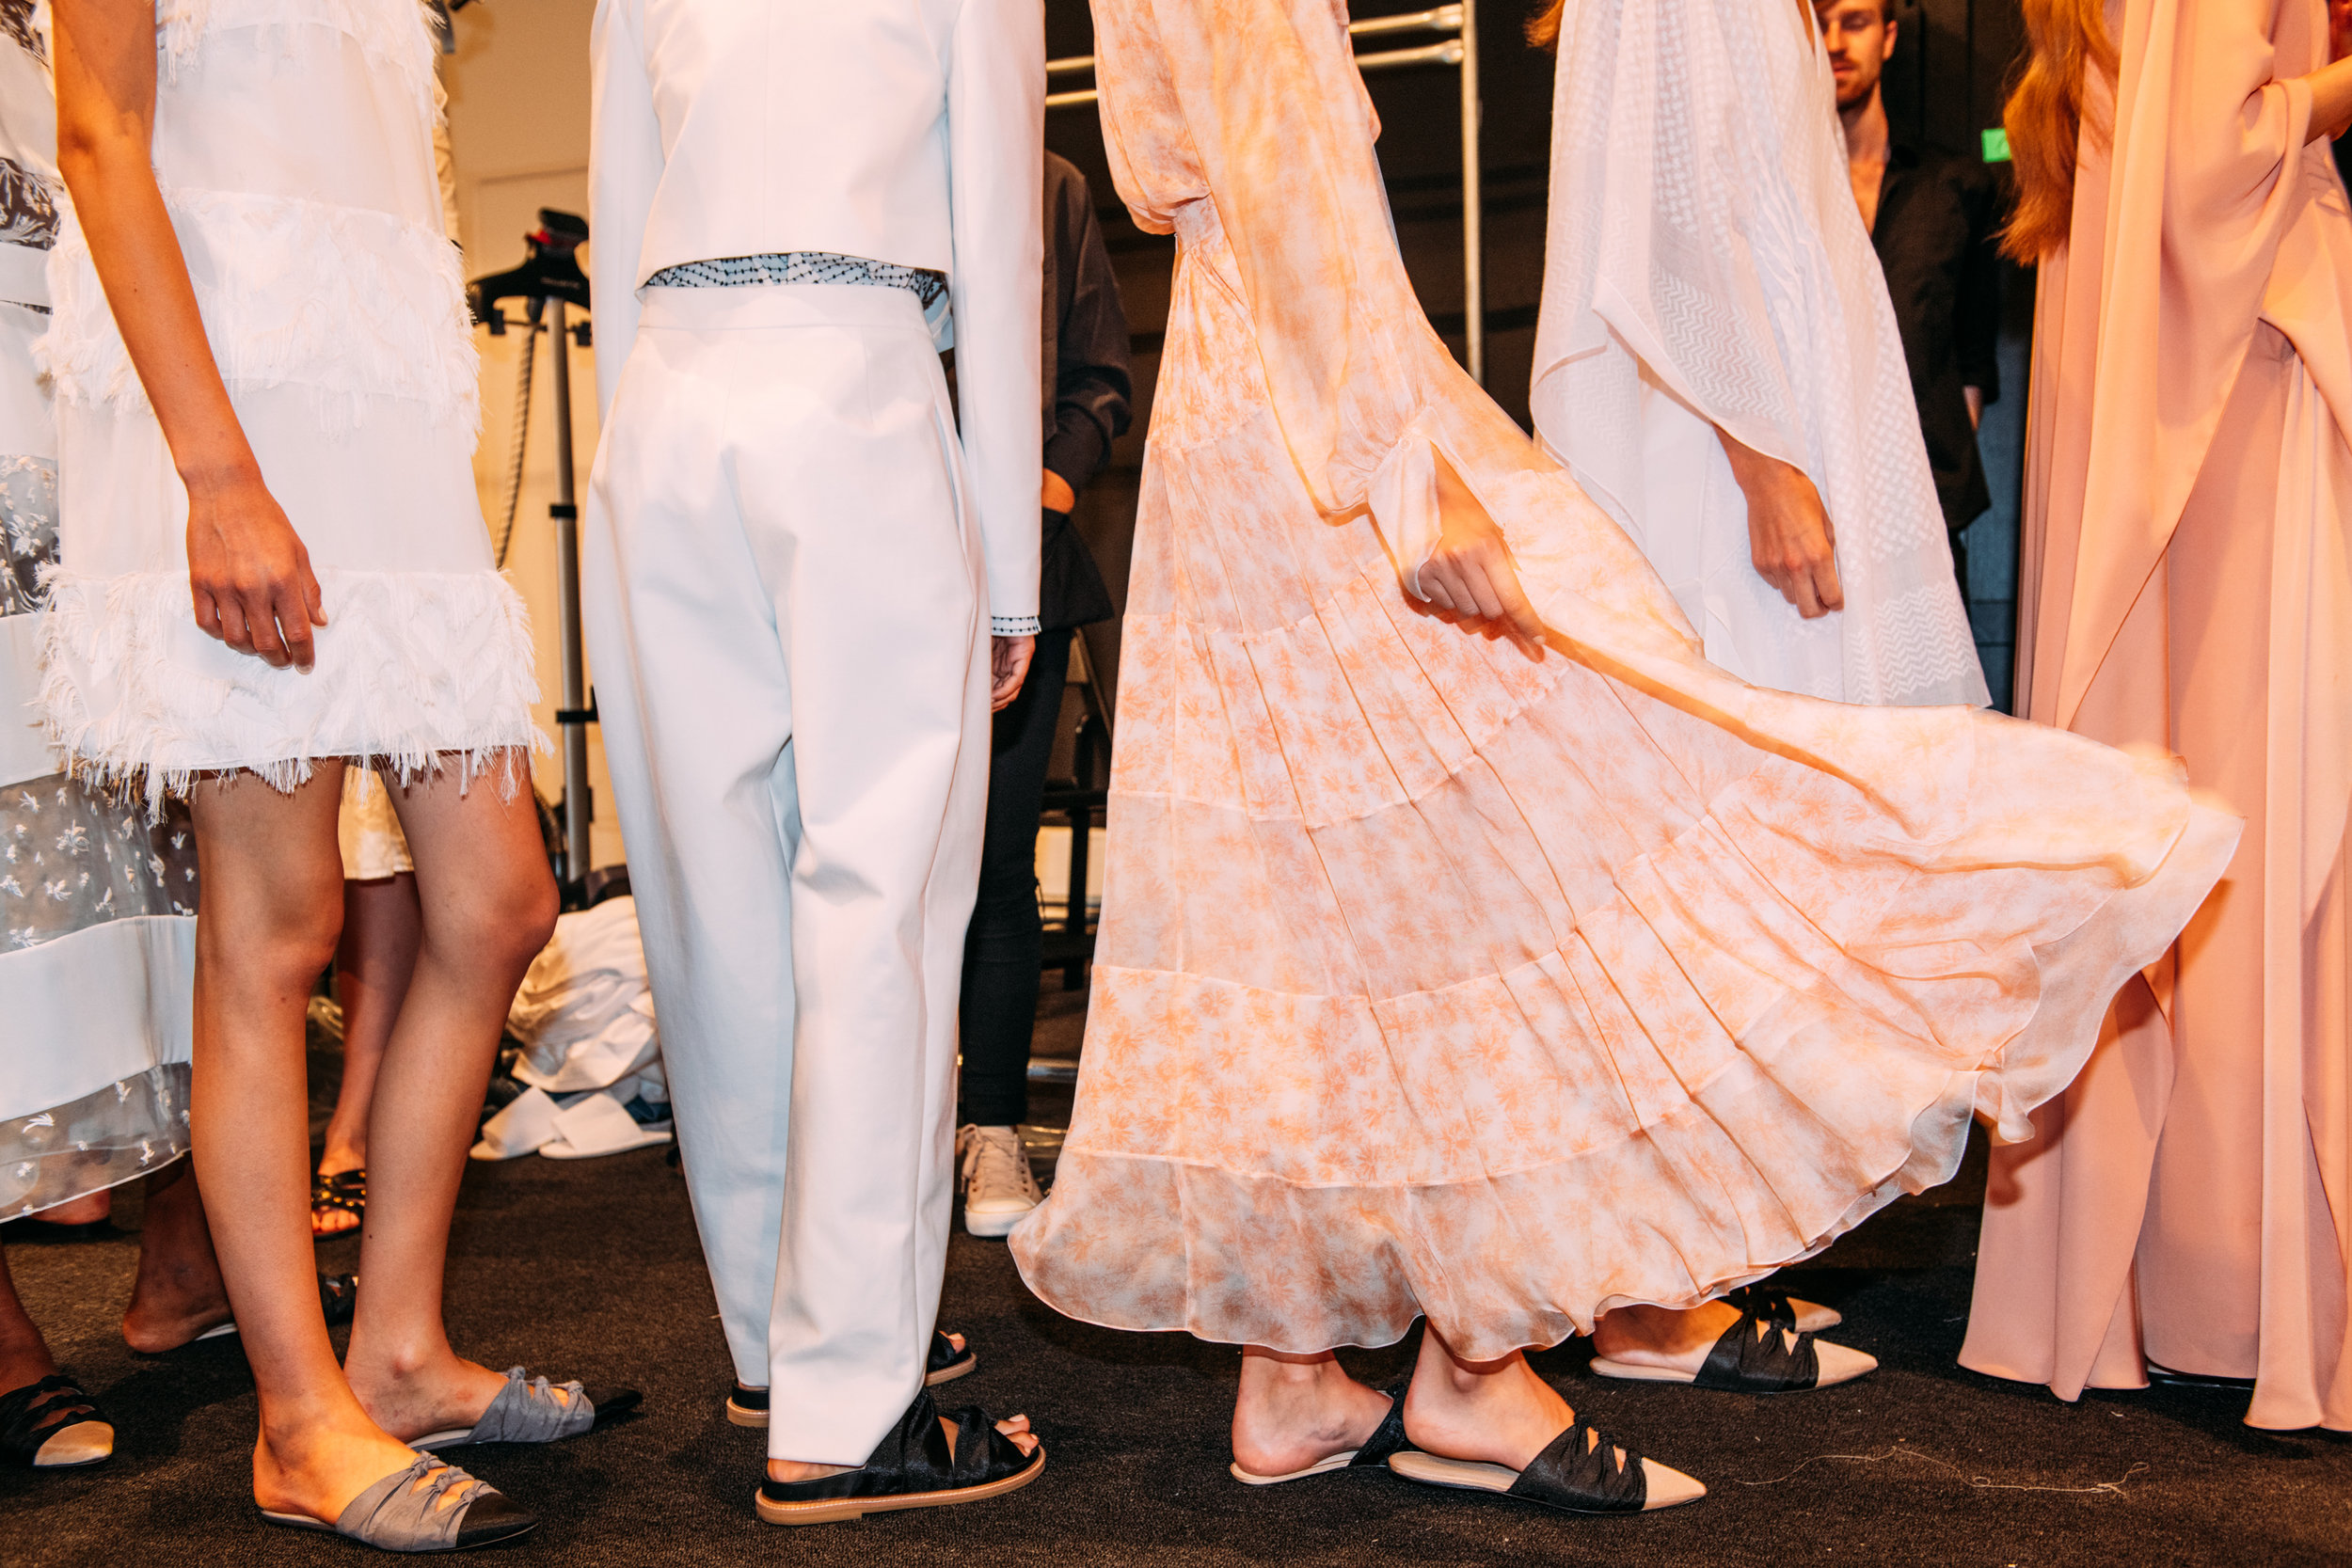 Greenberg_NYFW_NBN_090618-896.jpg